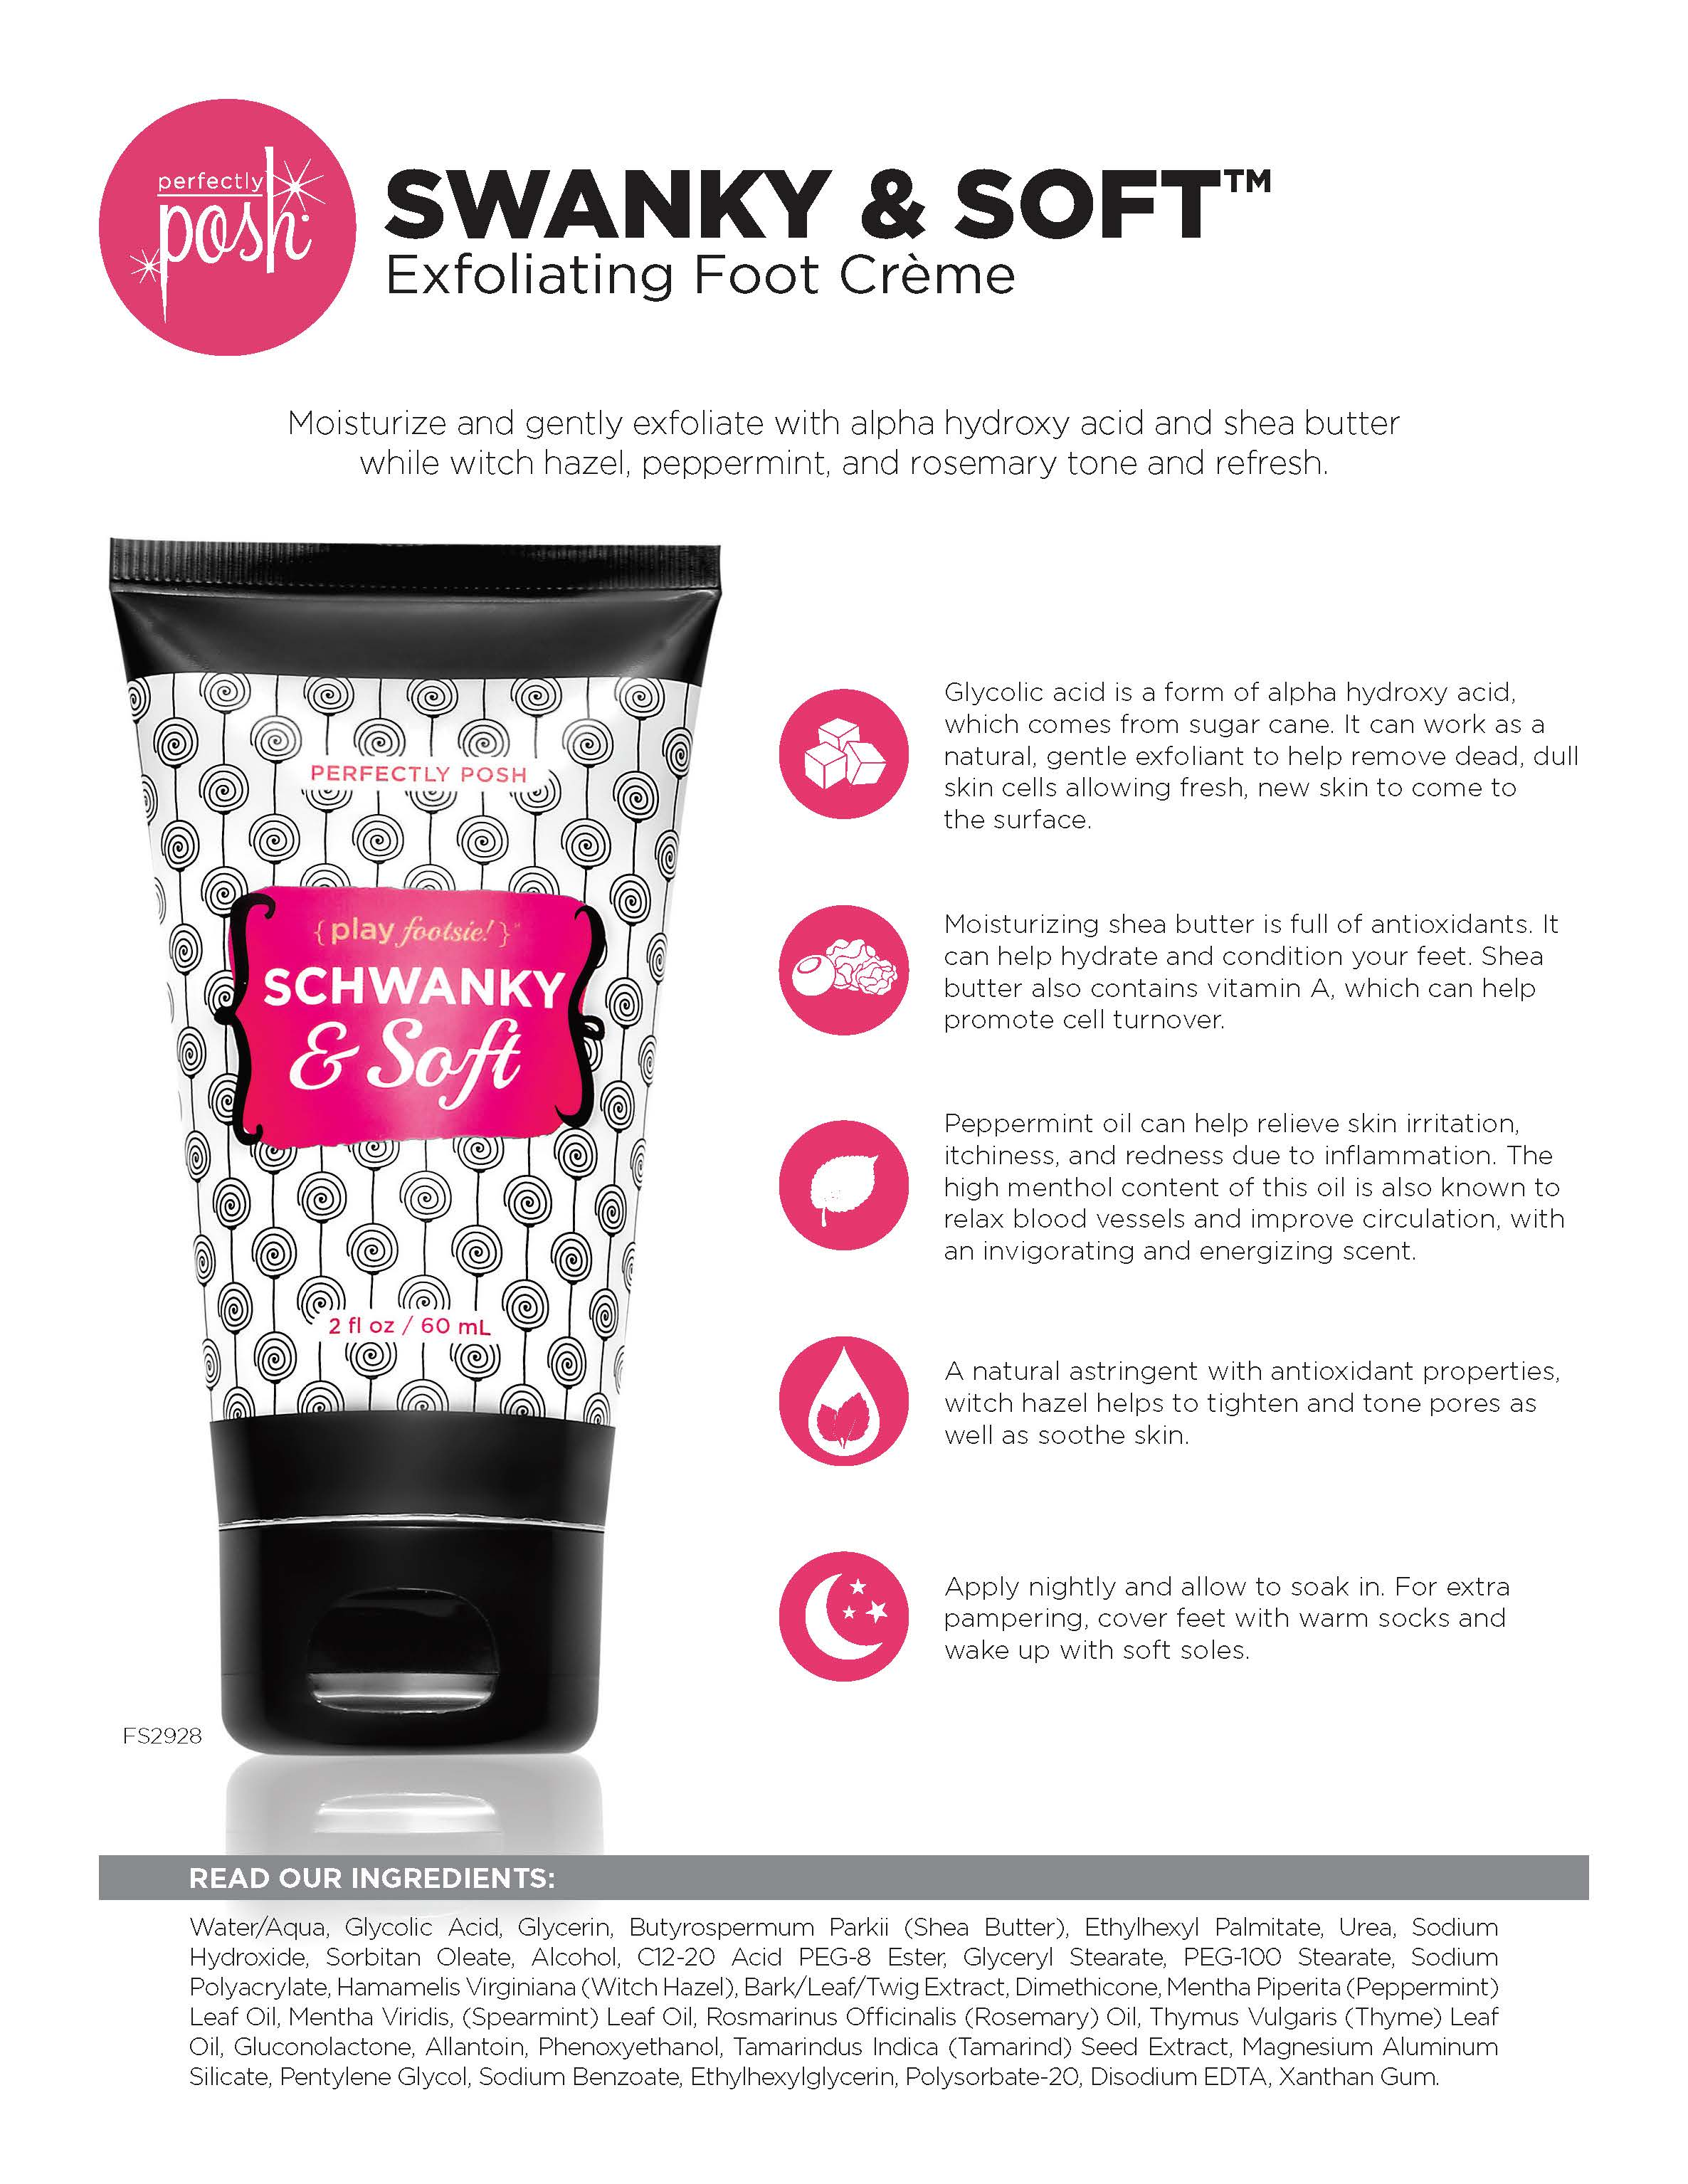 Schwanky & Soft Exfoliating Foot Creme